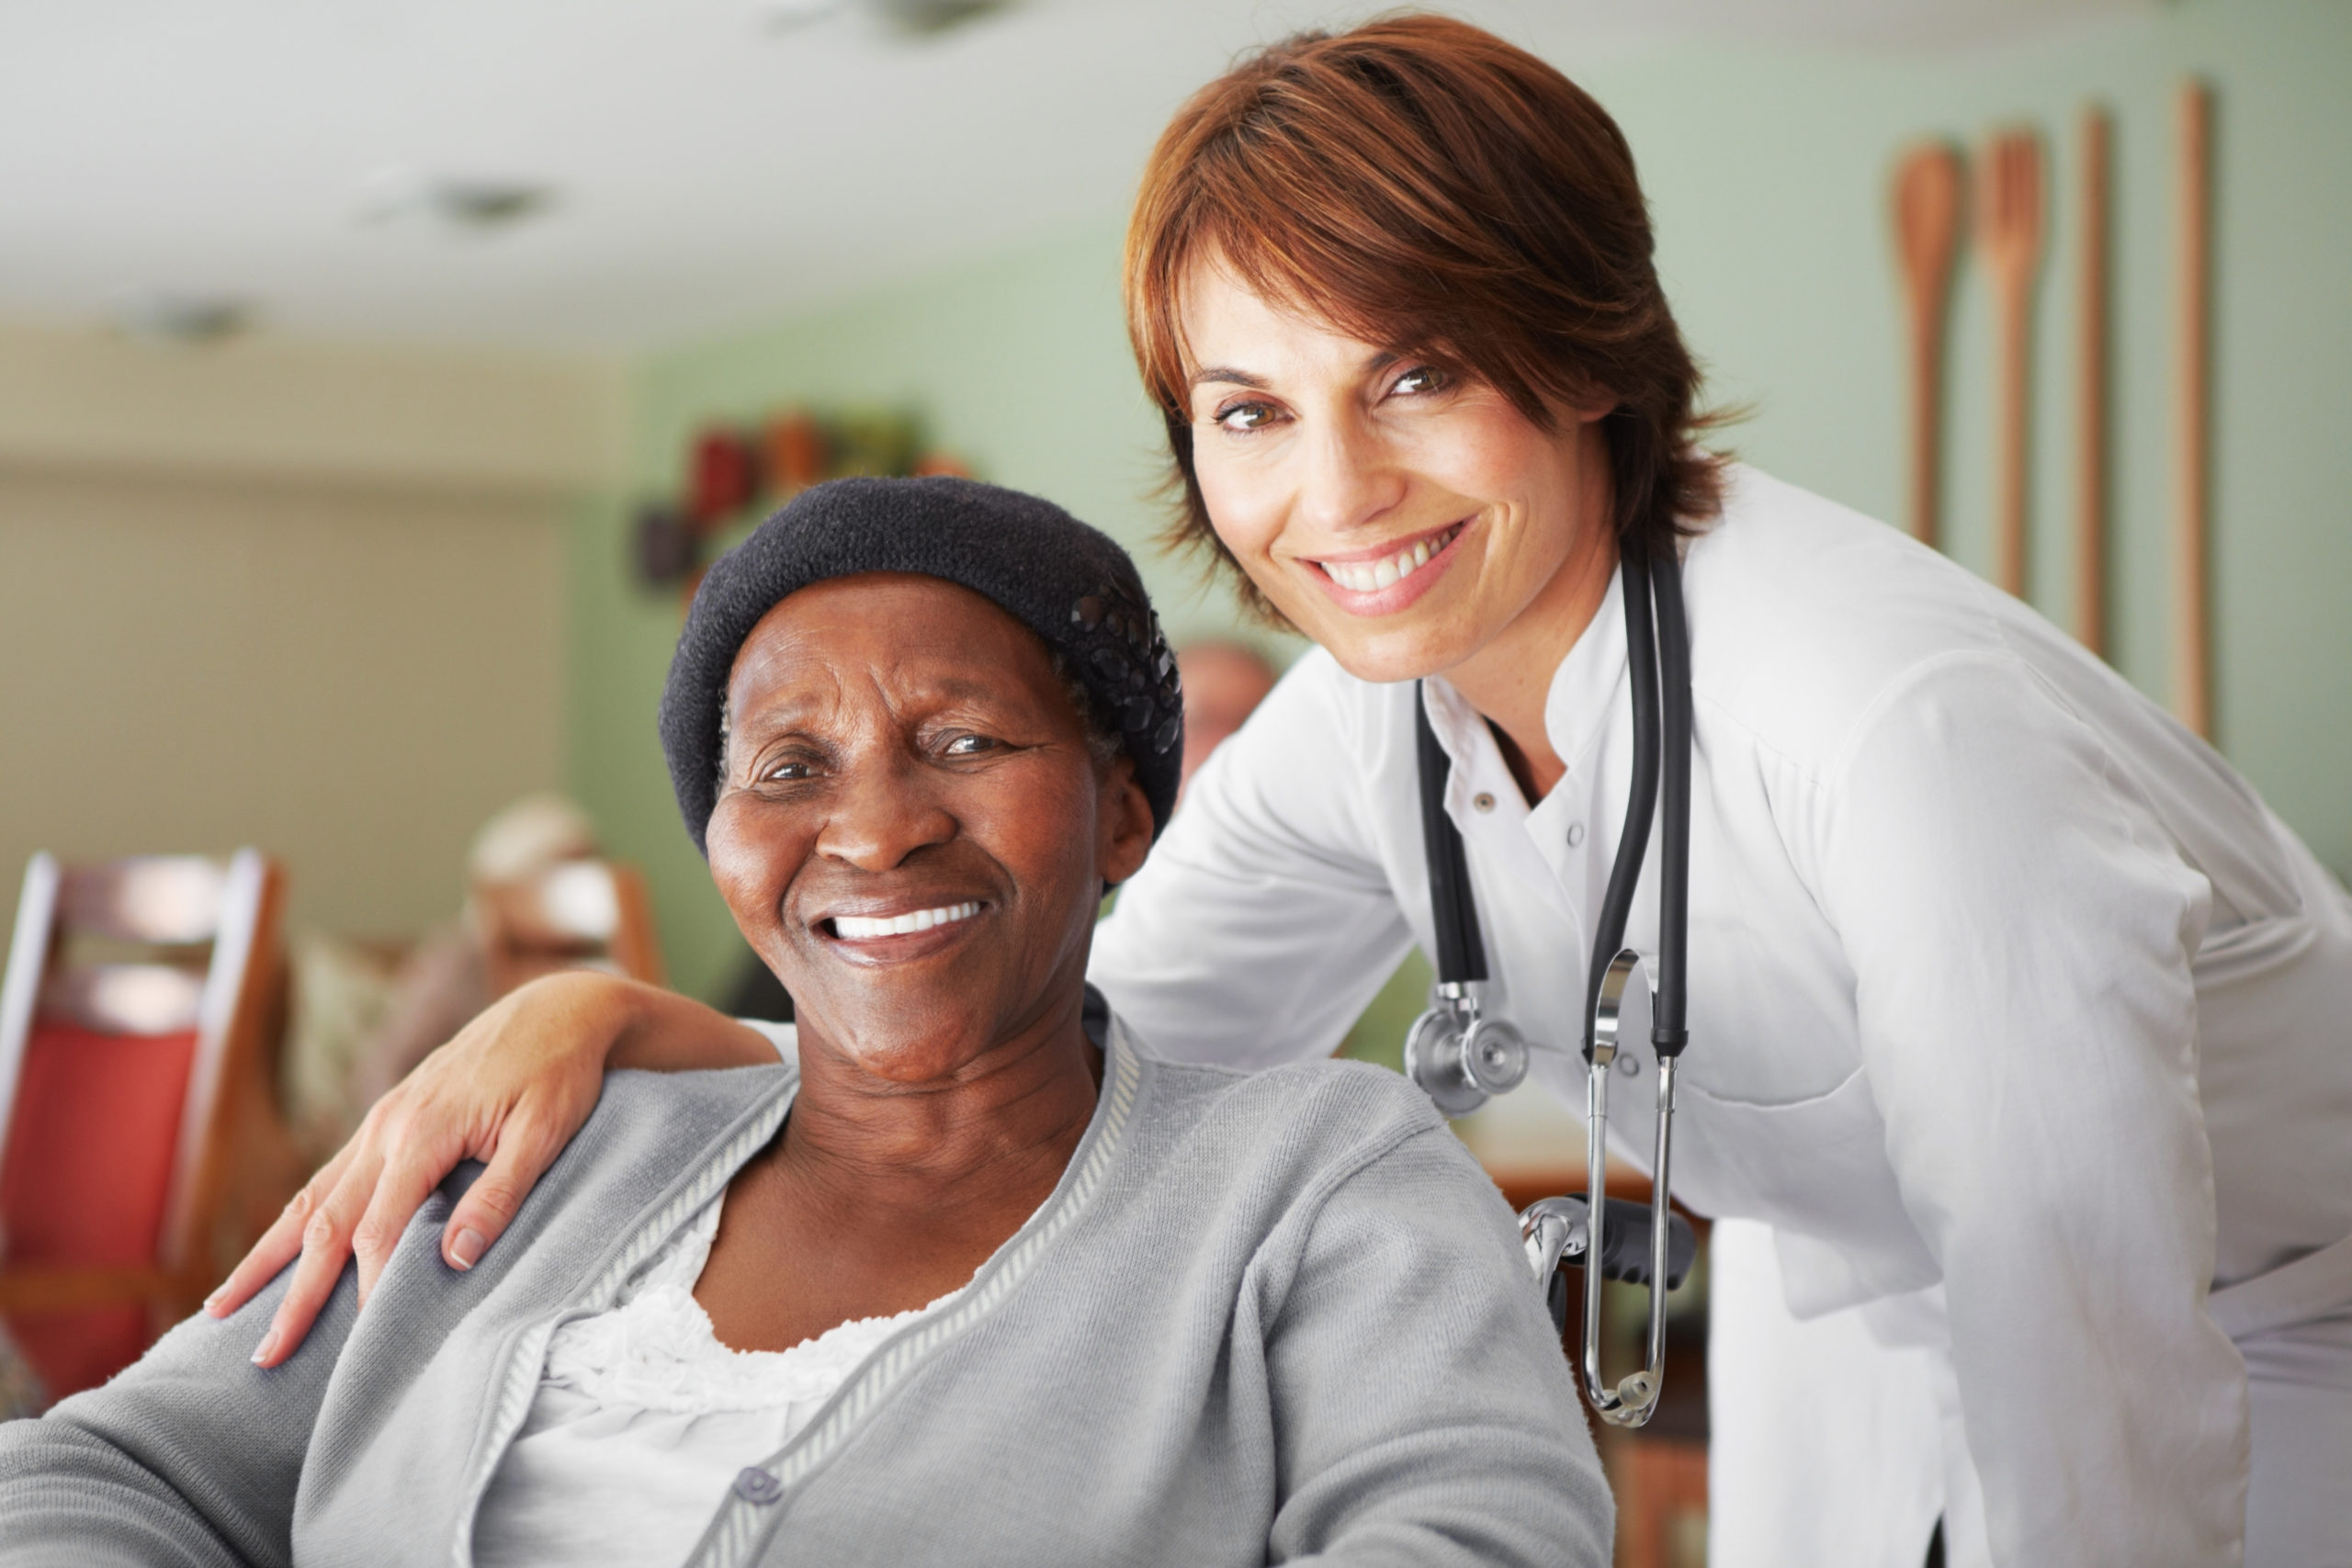 A supportive female doctor alongside an elderly african patient in a retirement home